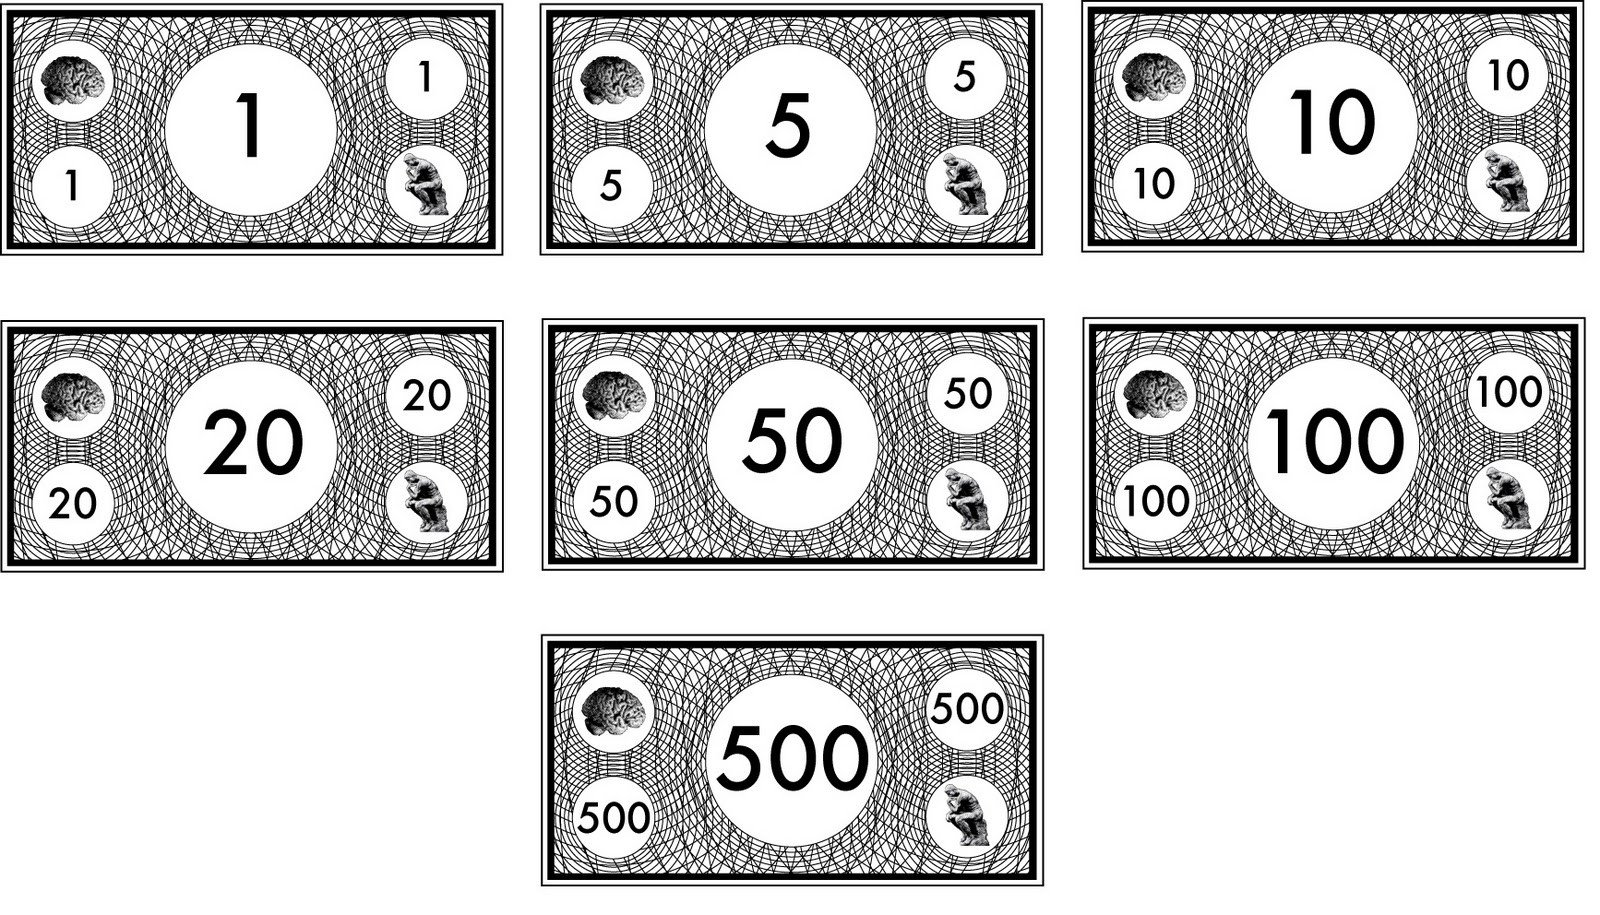 Monopoly Money Black and White Design Practice Final Money Design